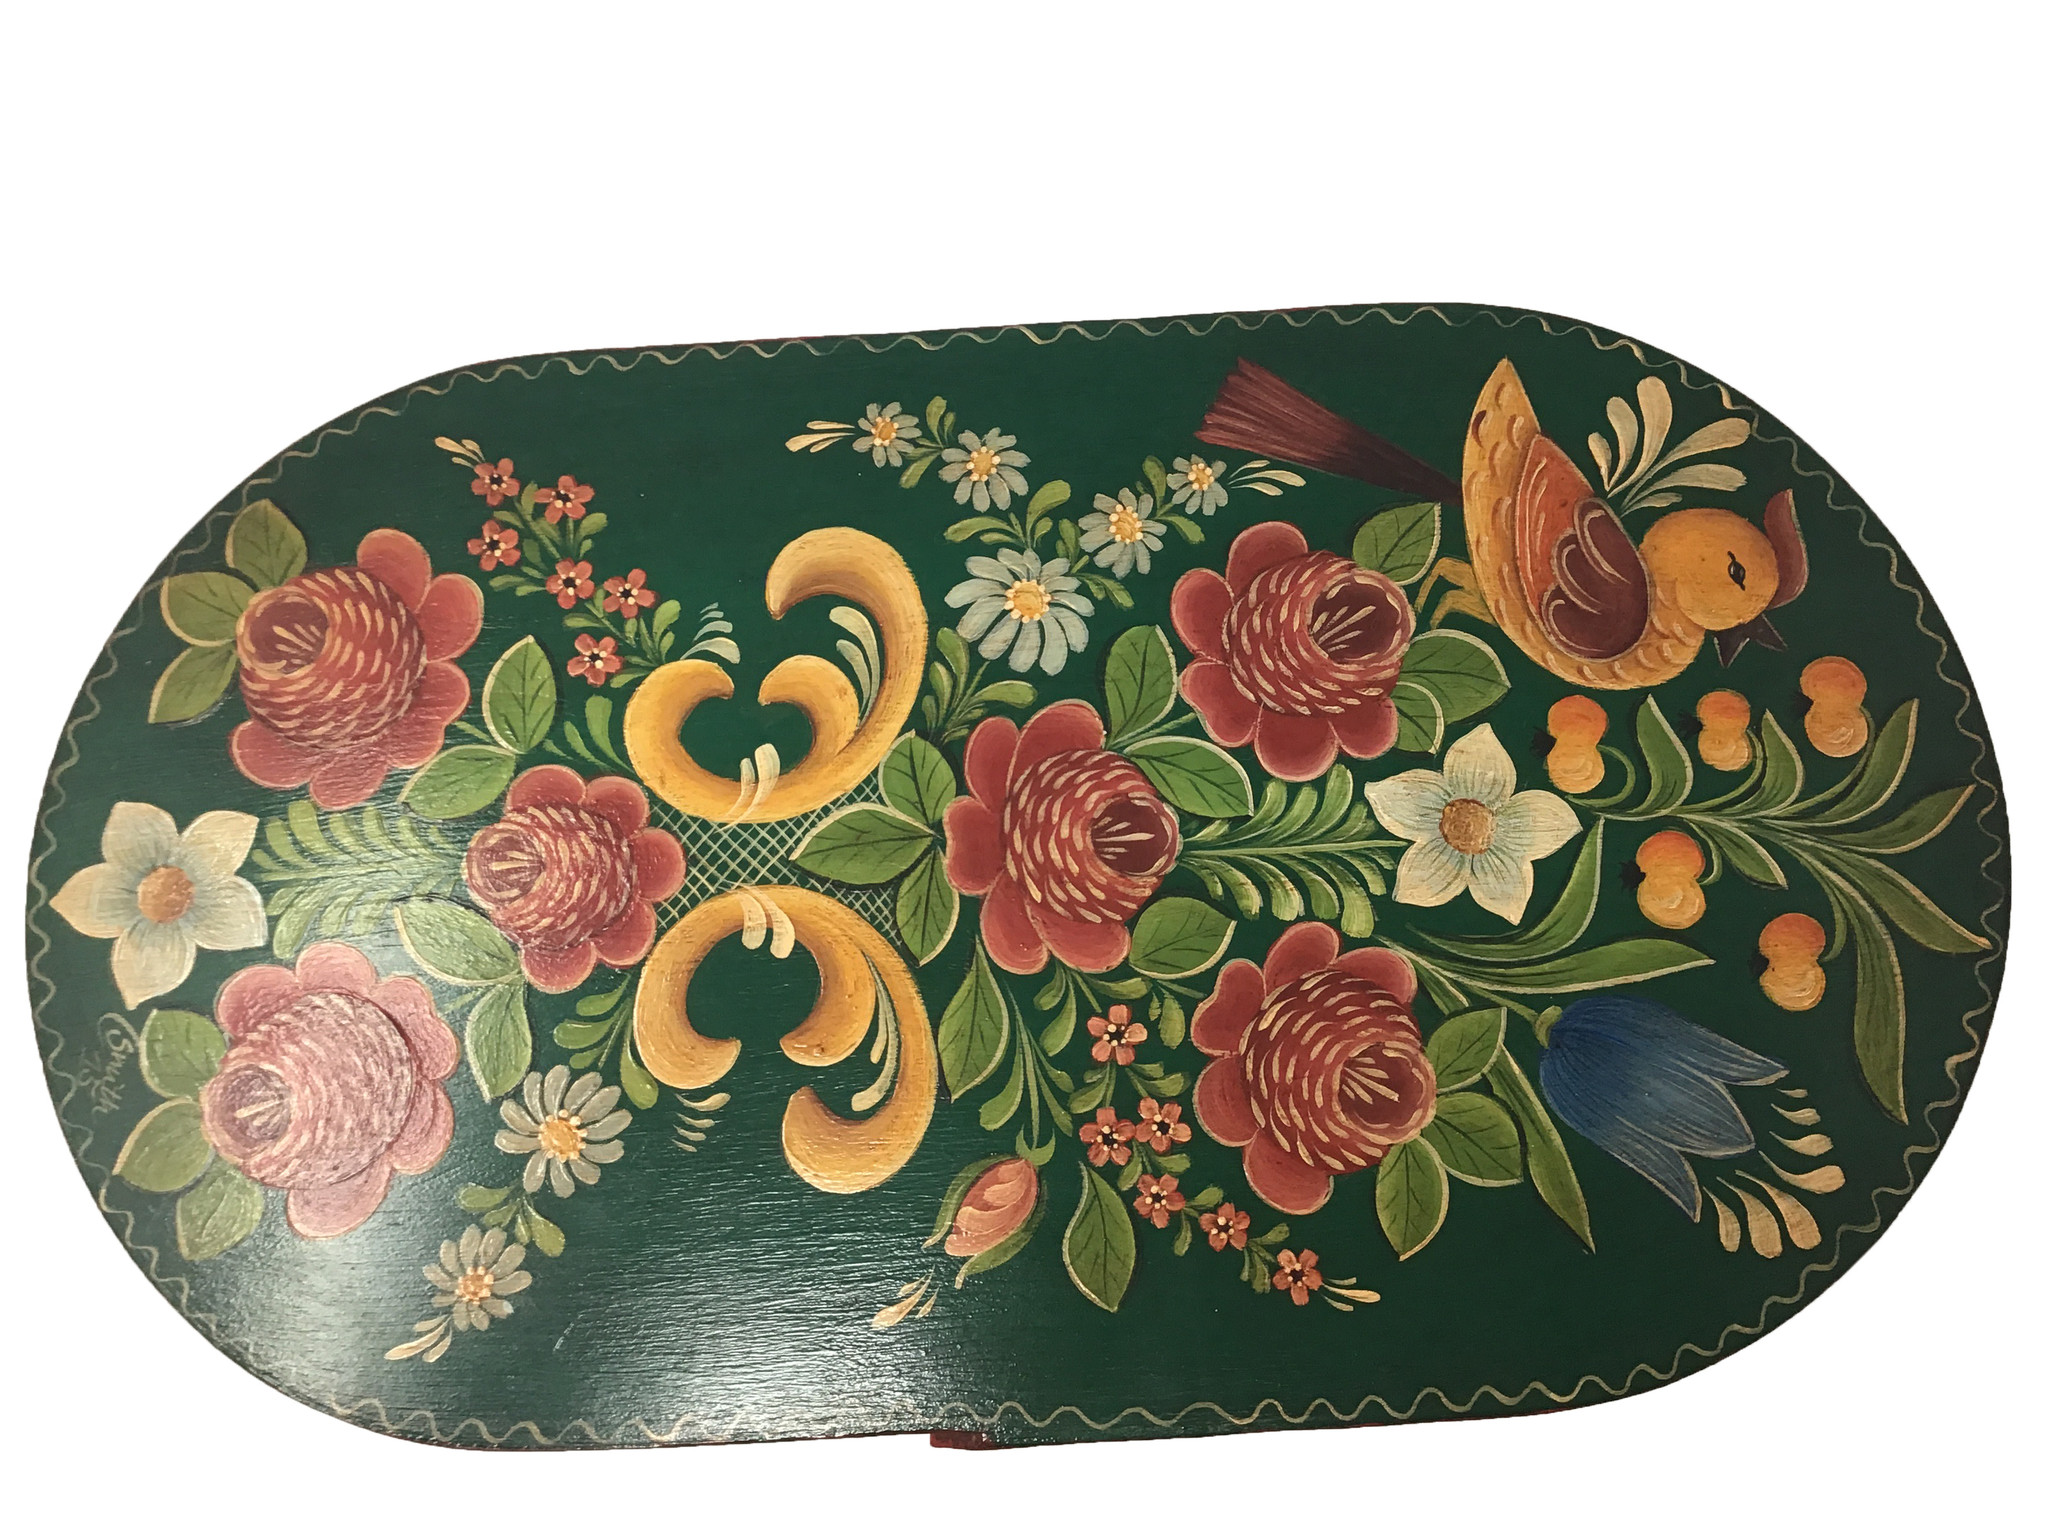 Oval Forest Green Box with Flowers-2